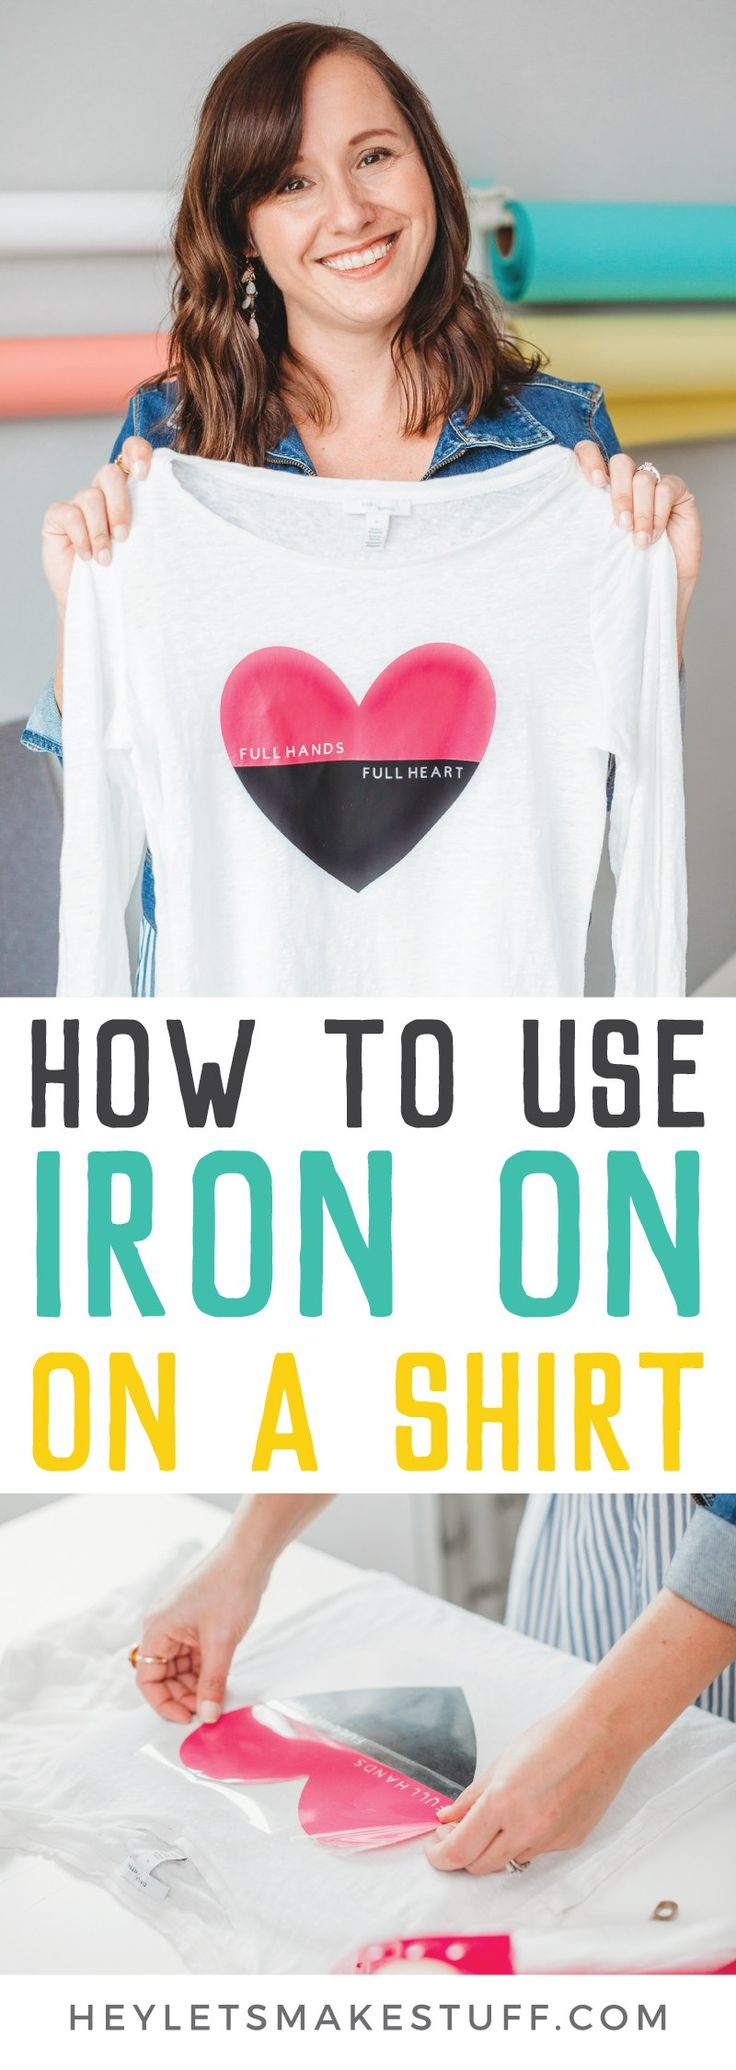 Using Cricut Iron On Vinyl on a Shirt in 2020 Cricut